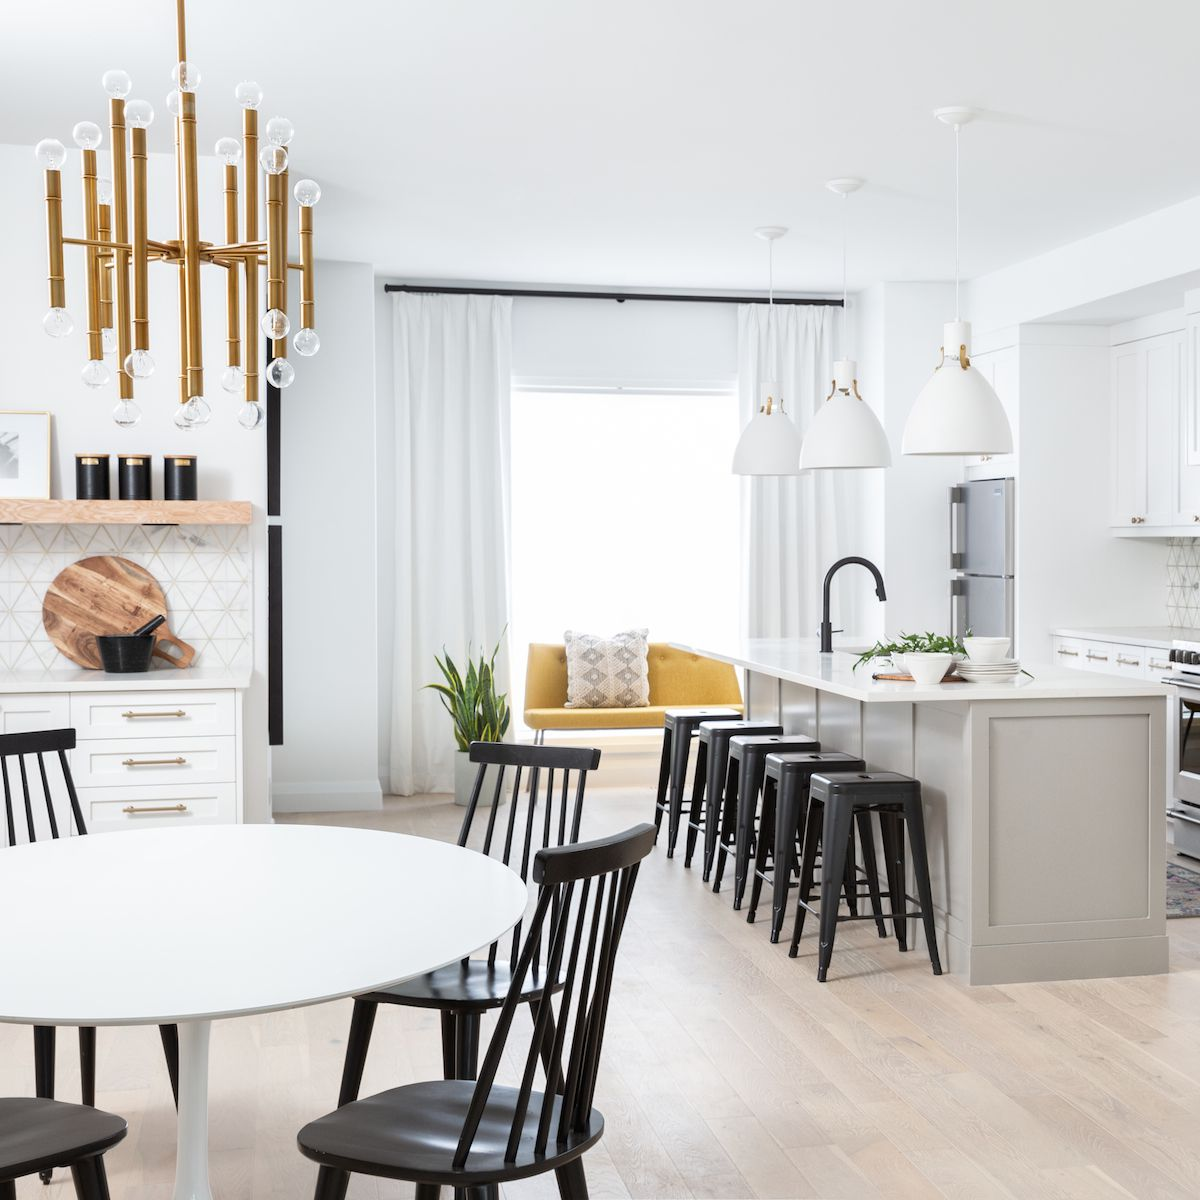 An open-concept kitchen with bold furniture and details